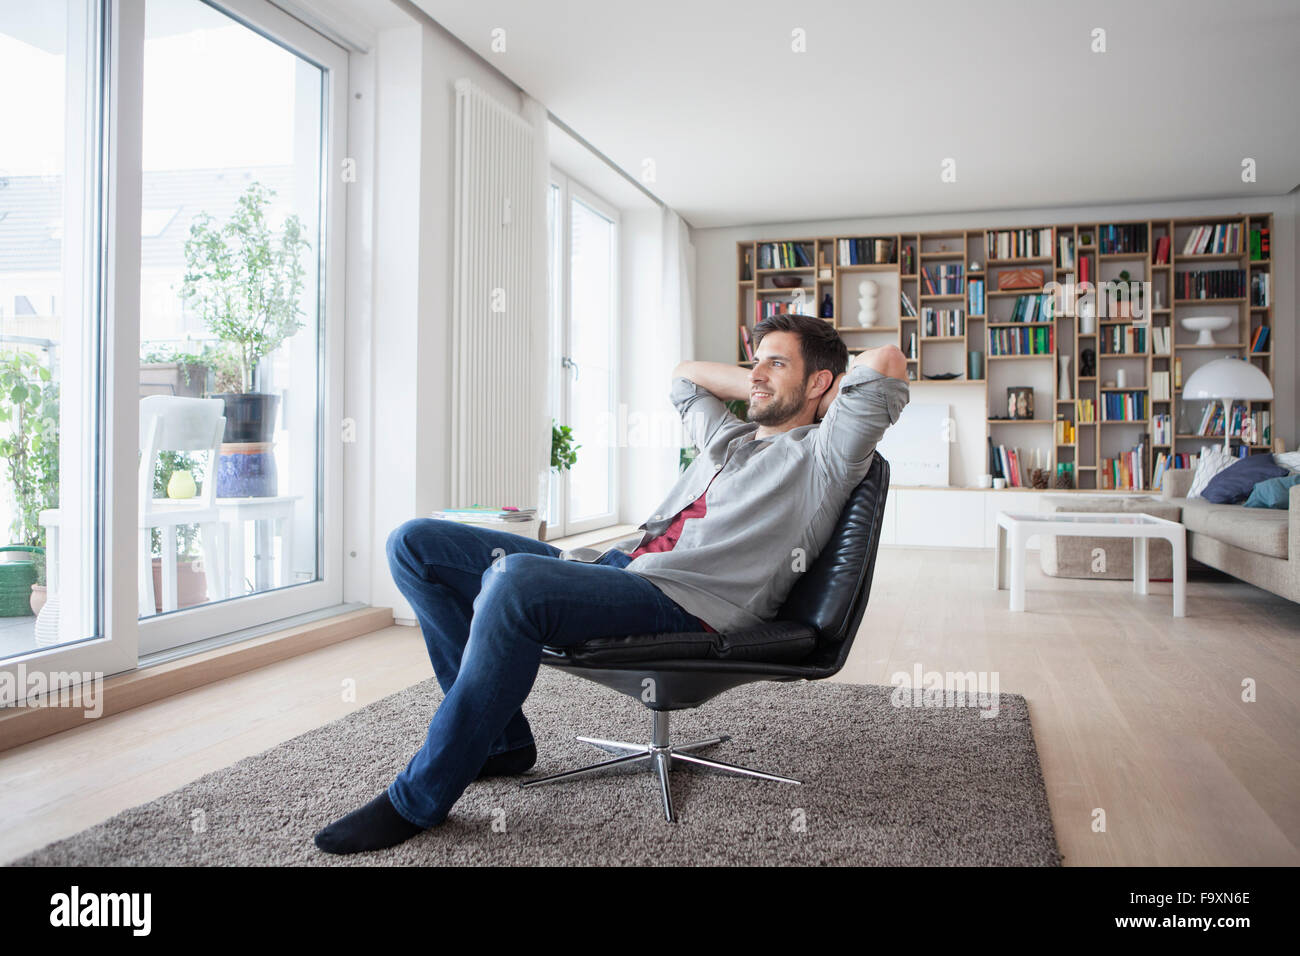 Smiling man at home sitting in armchair with hands behind head - Stock Image